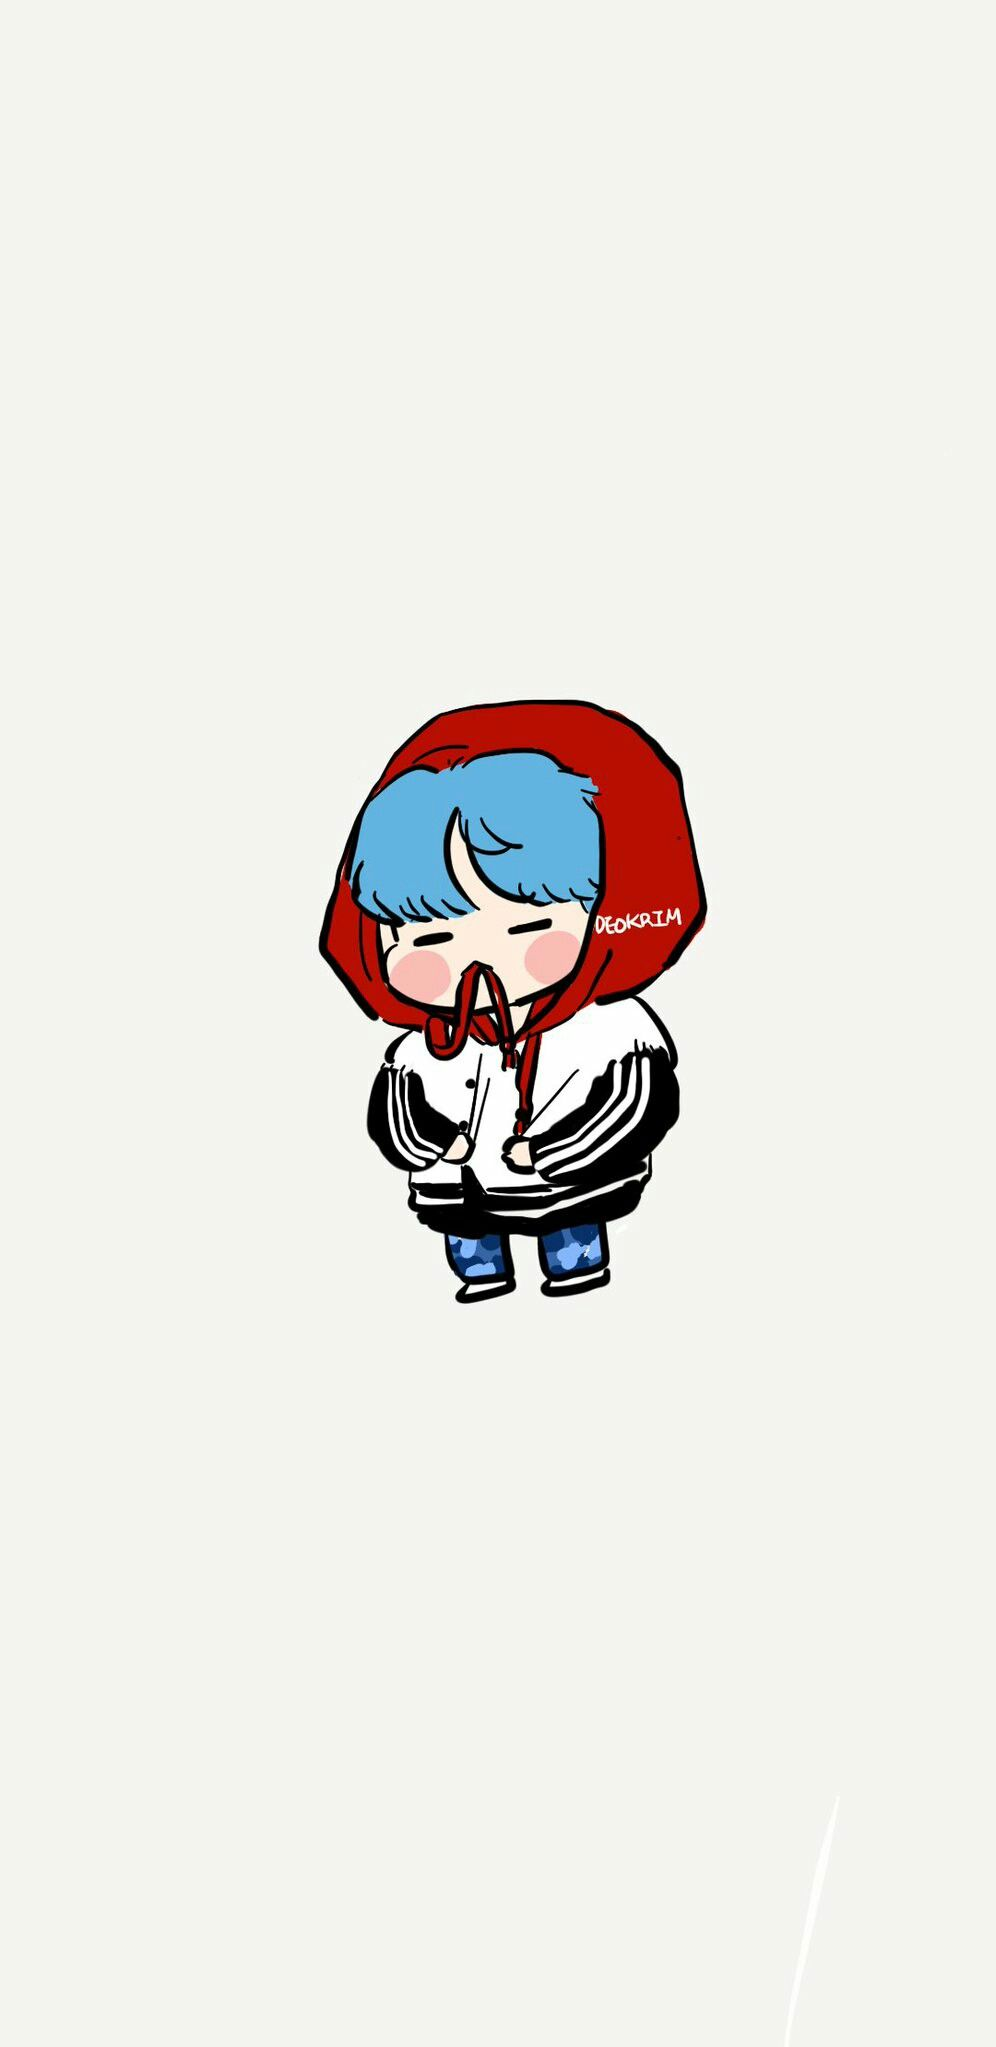 Pin By Yunbi On SUGA Pinterest BTS Fanart And Kpop